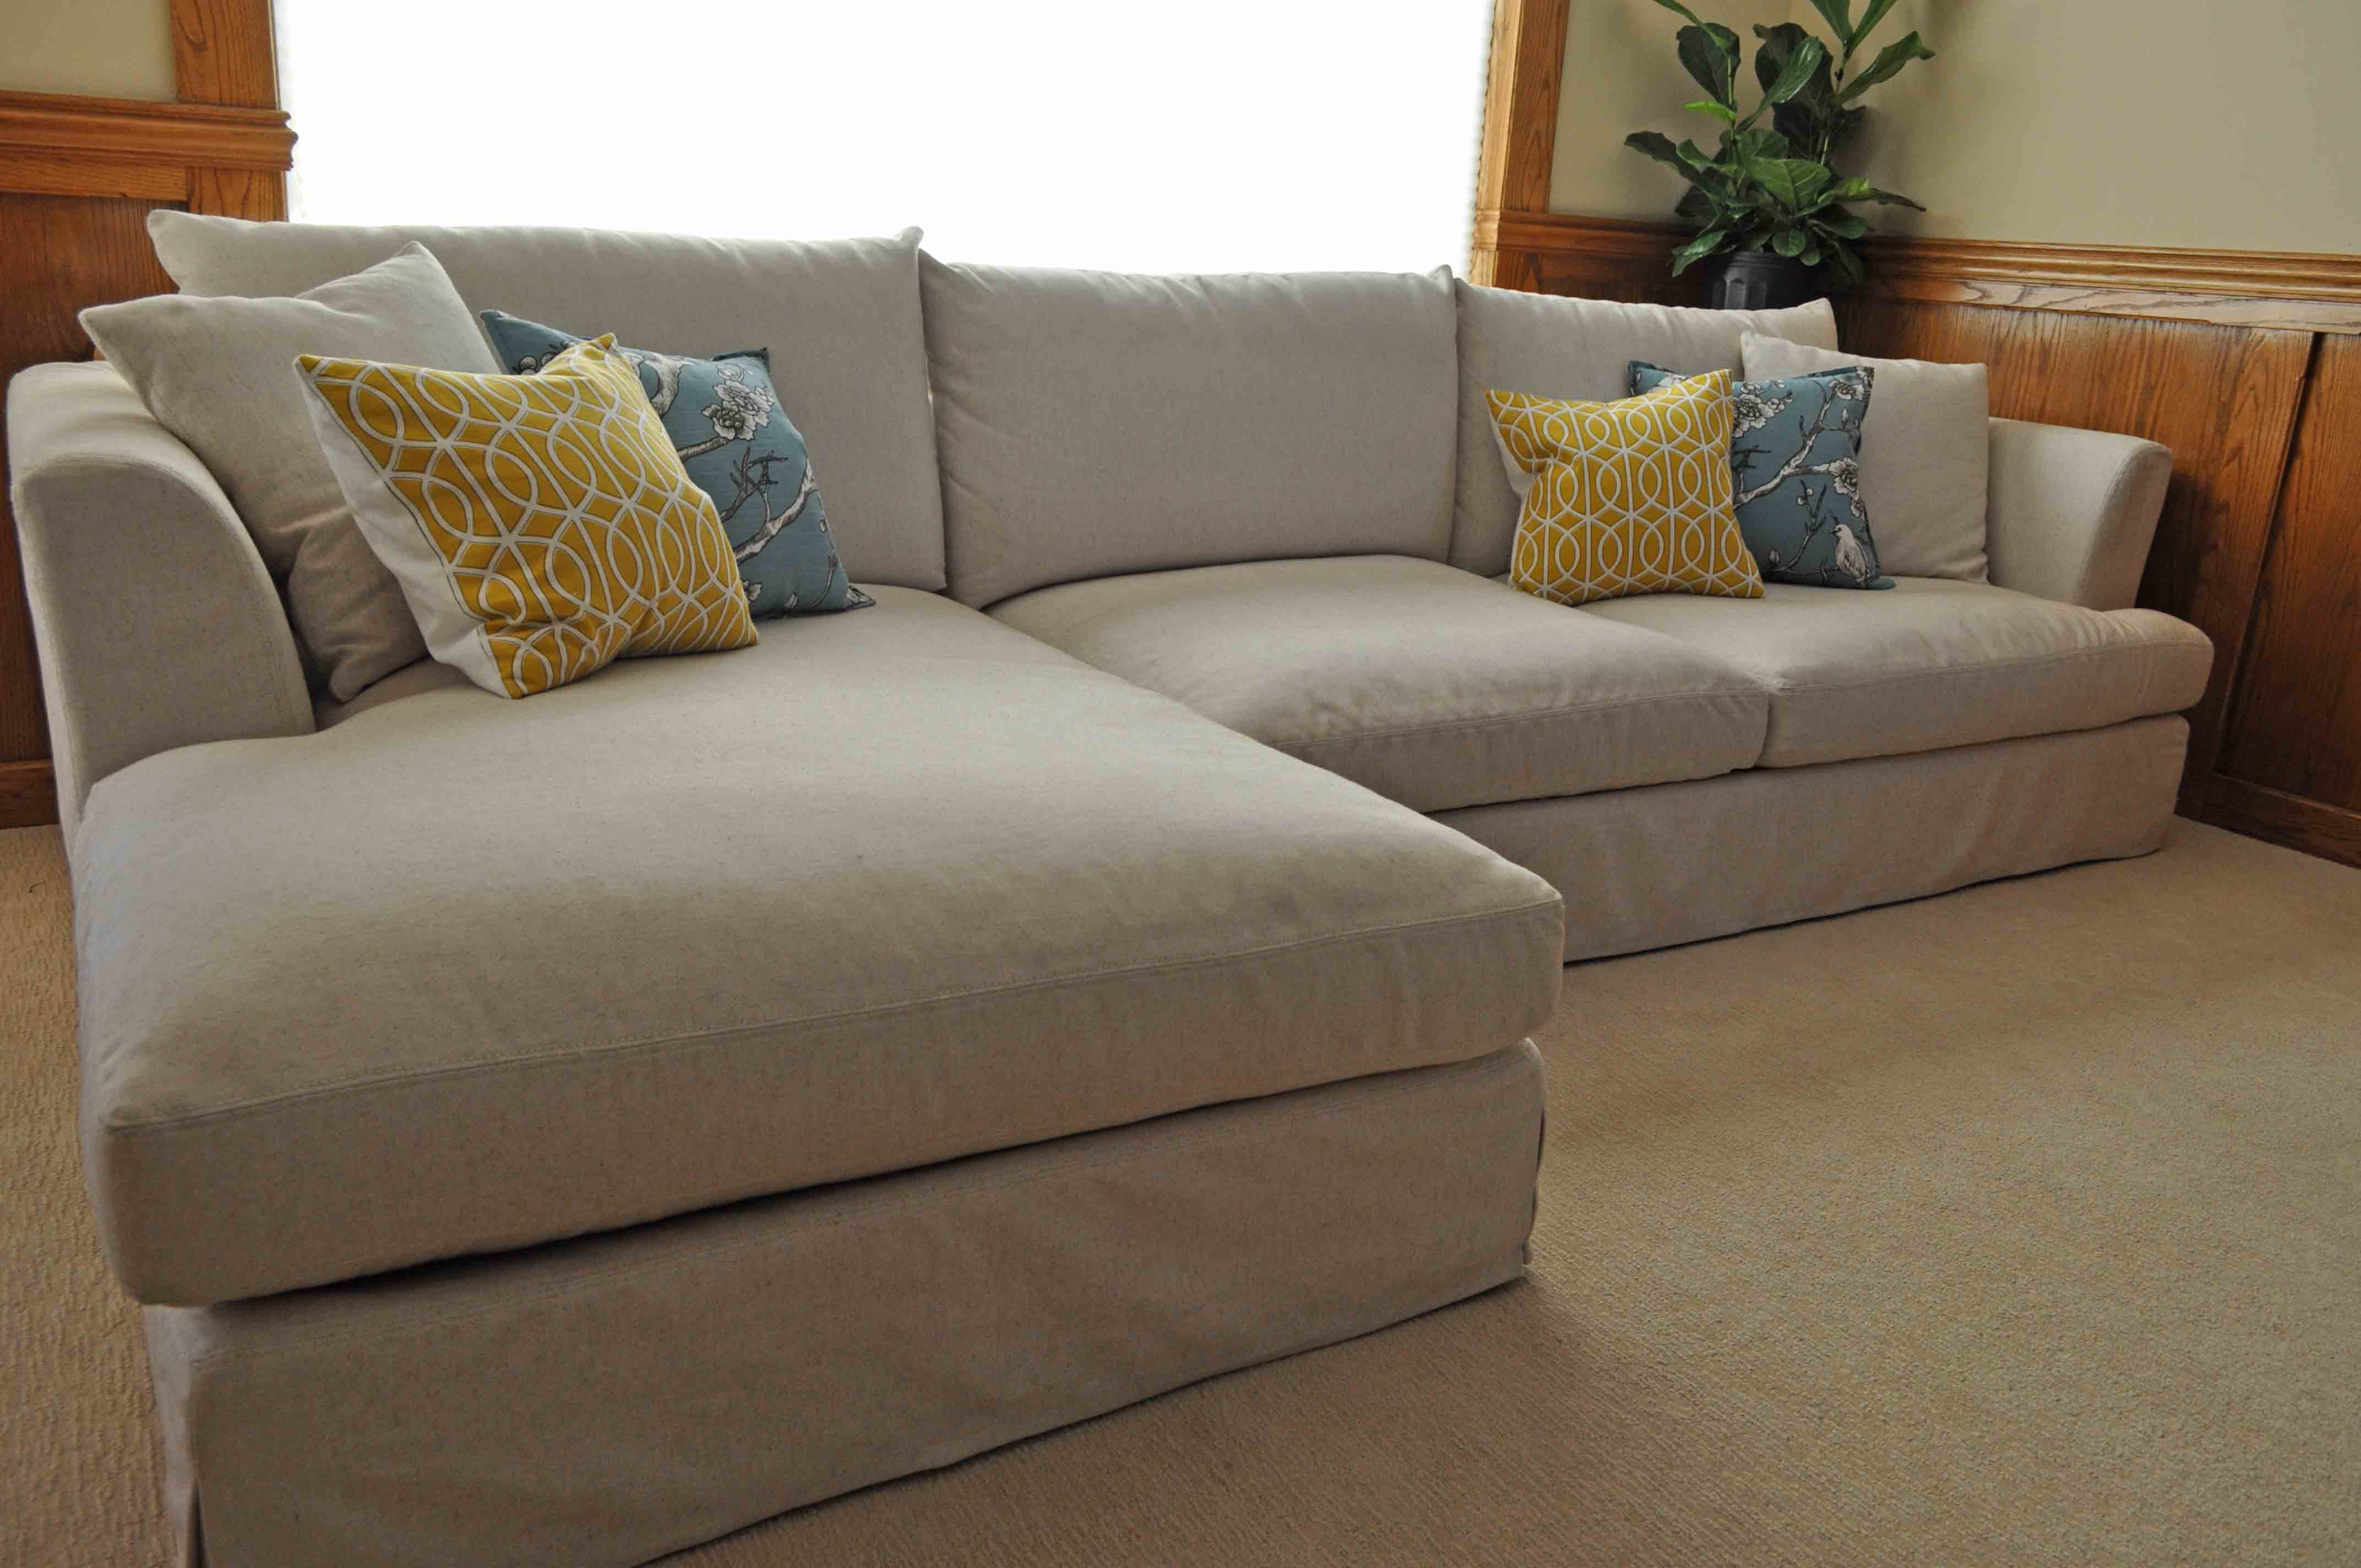 Ottawa Sale Sectional Sofas For Recent Furniture : Tufted Fabric Ottoman Bench Oversized Furniture Throws (View 5 of 15)